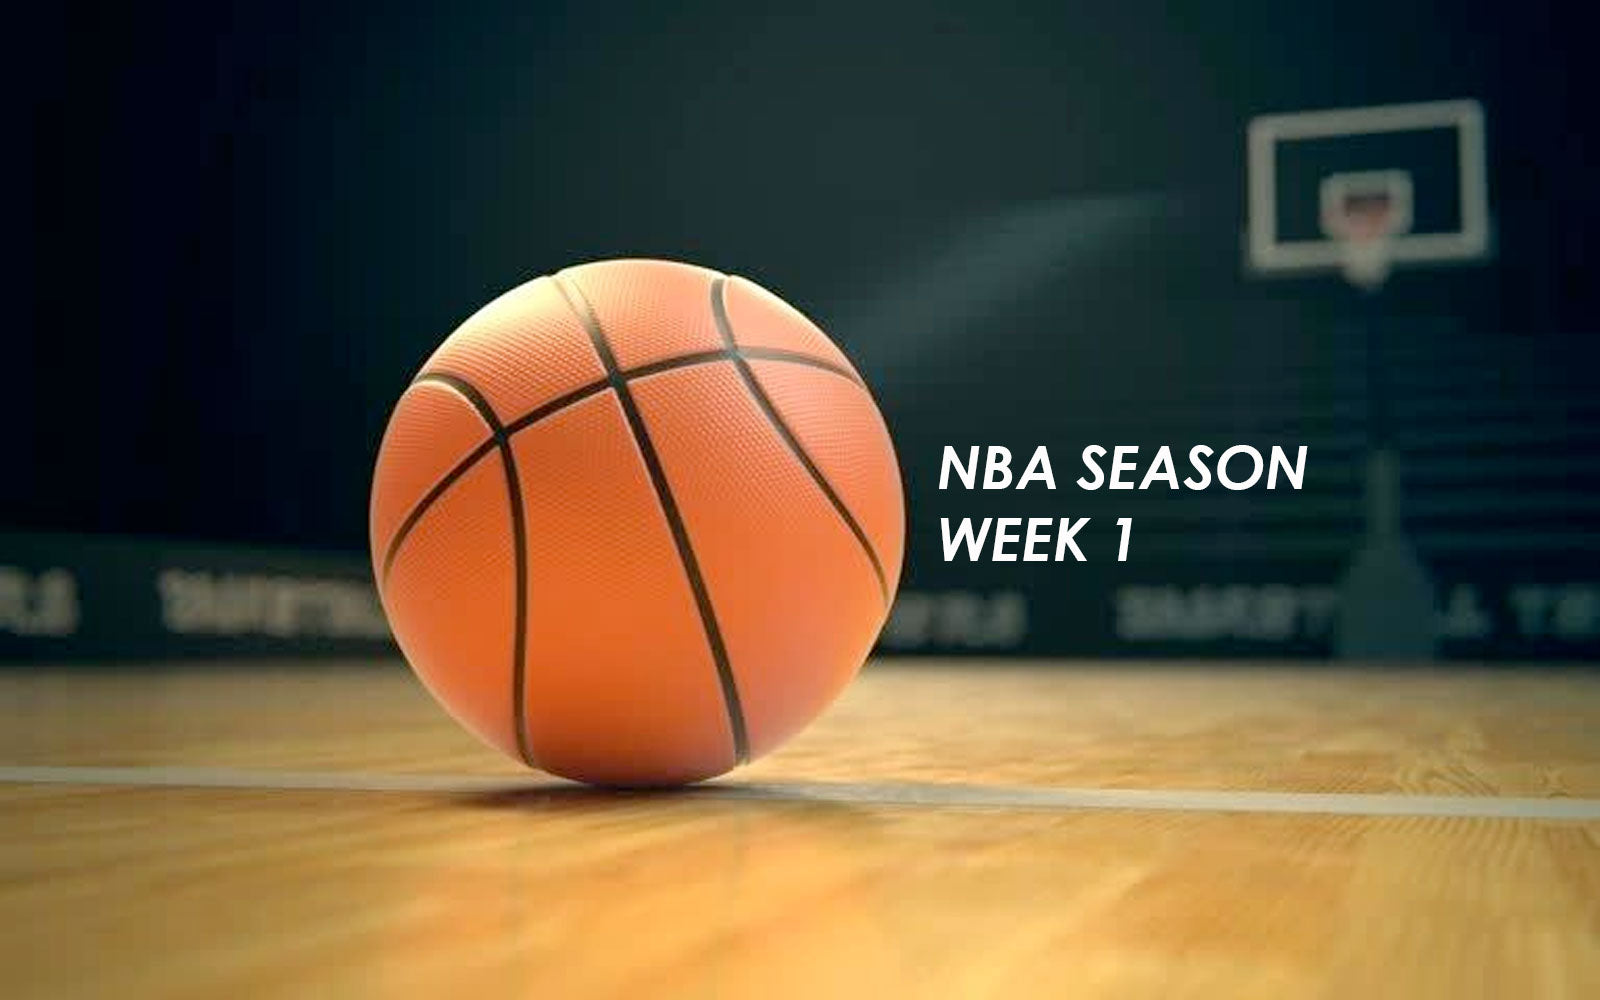 Early Outlook - Week 1 in the NBA